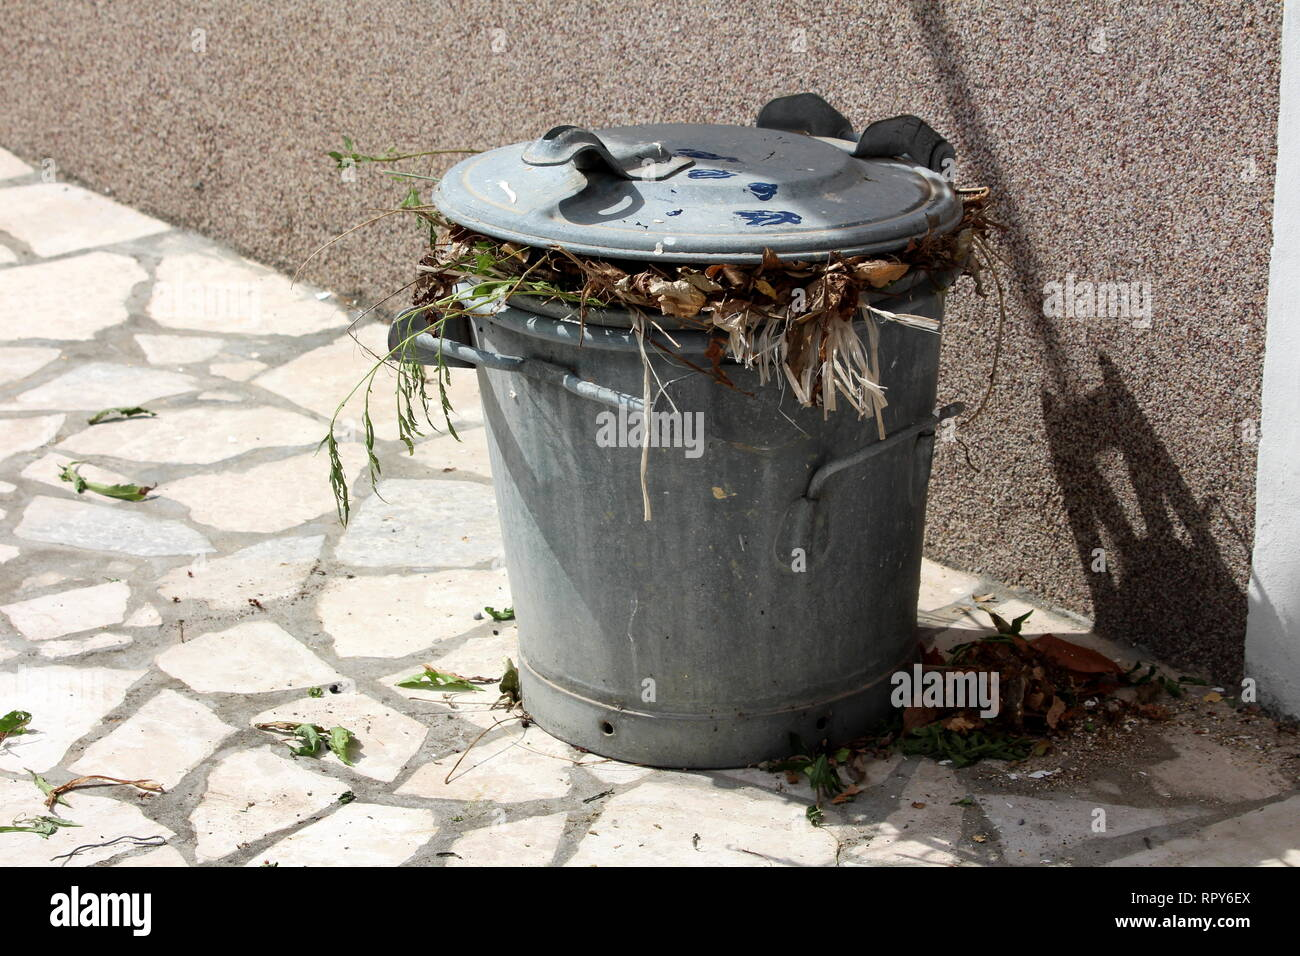 Small grey metal trash can with strong holders on sides full of organic waste from local garden on traditional stone path in front of house wall - Stock Image